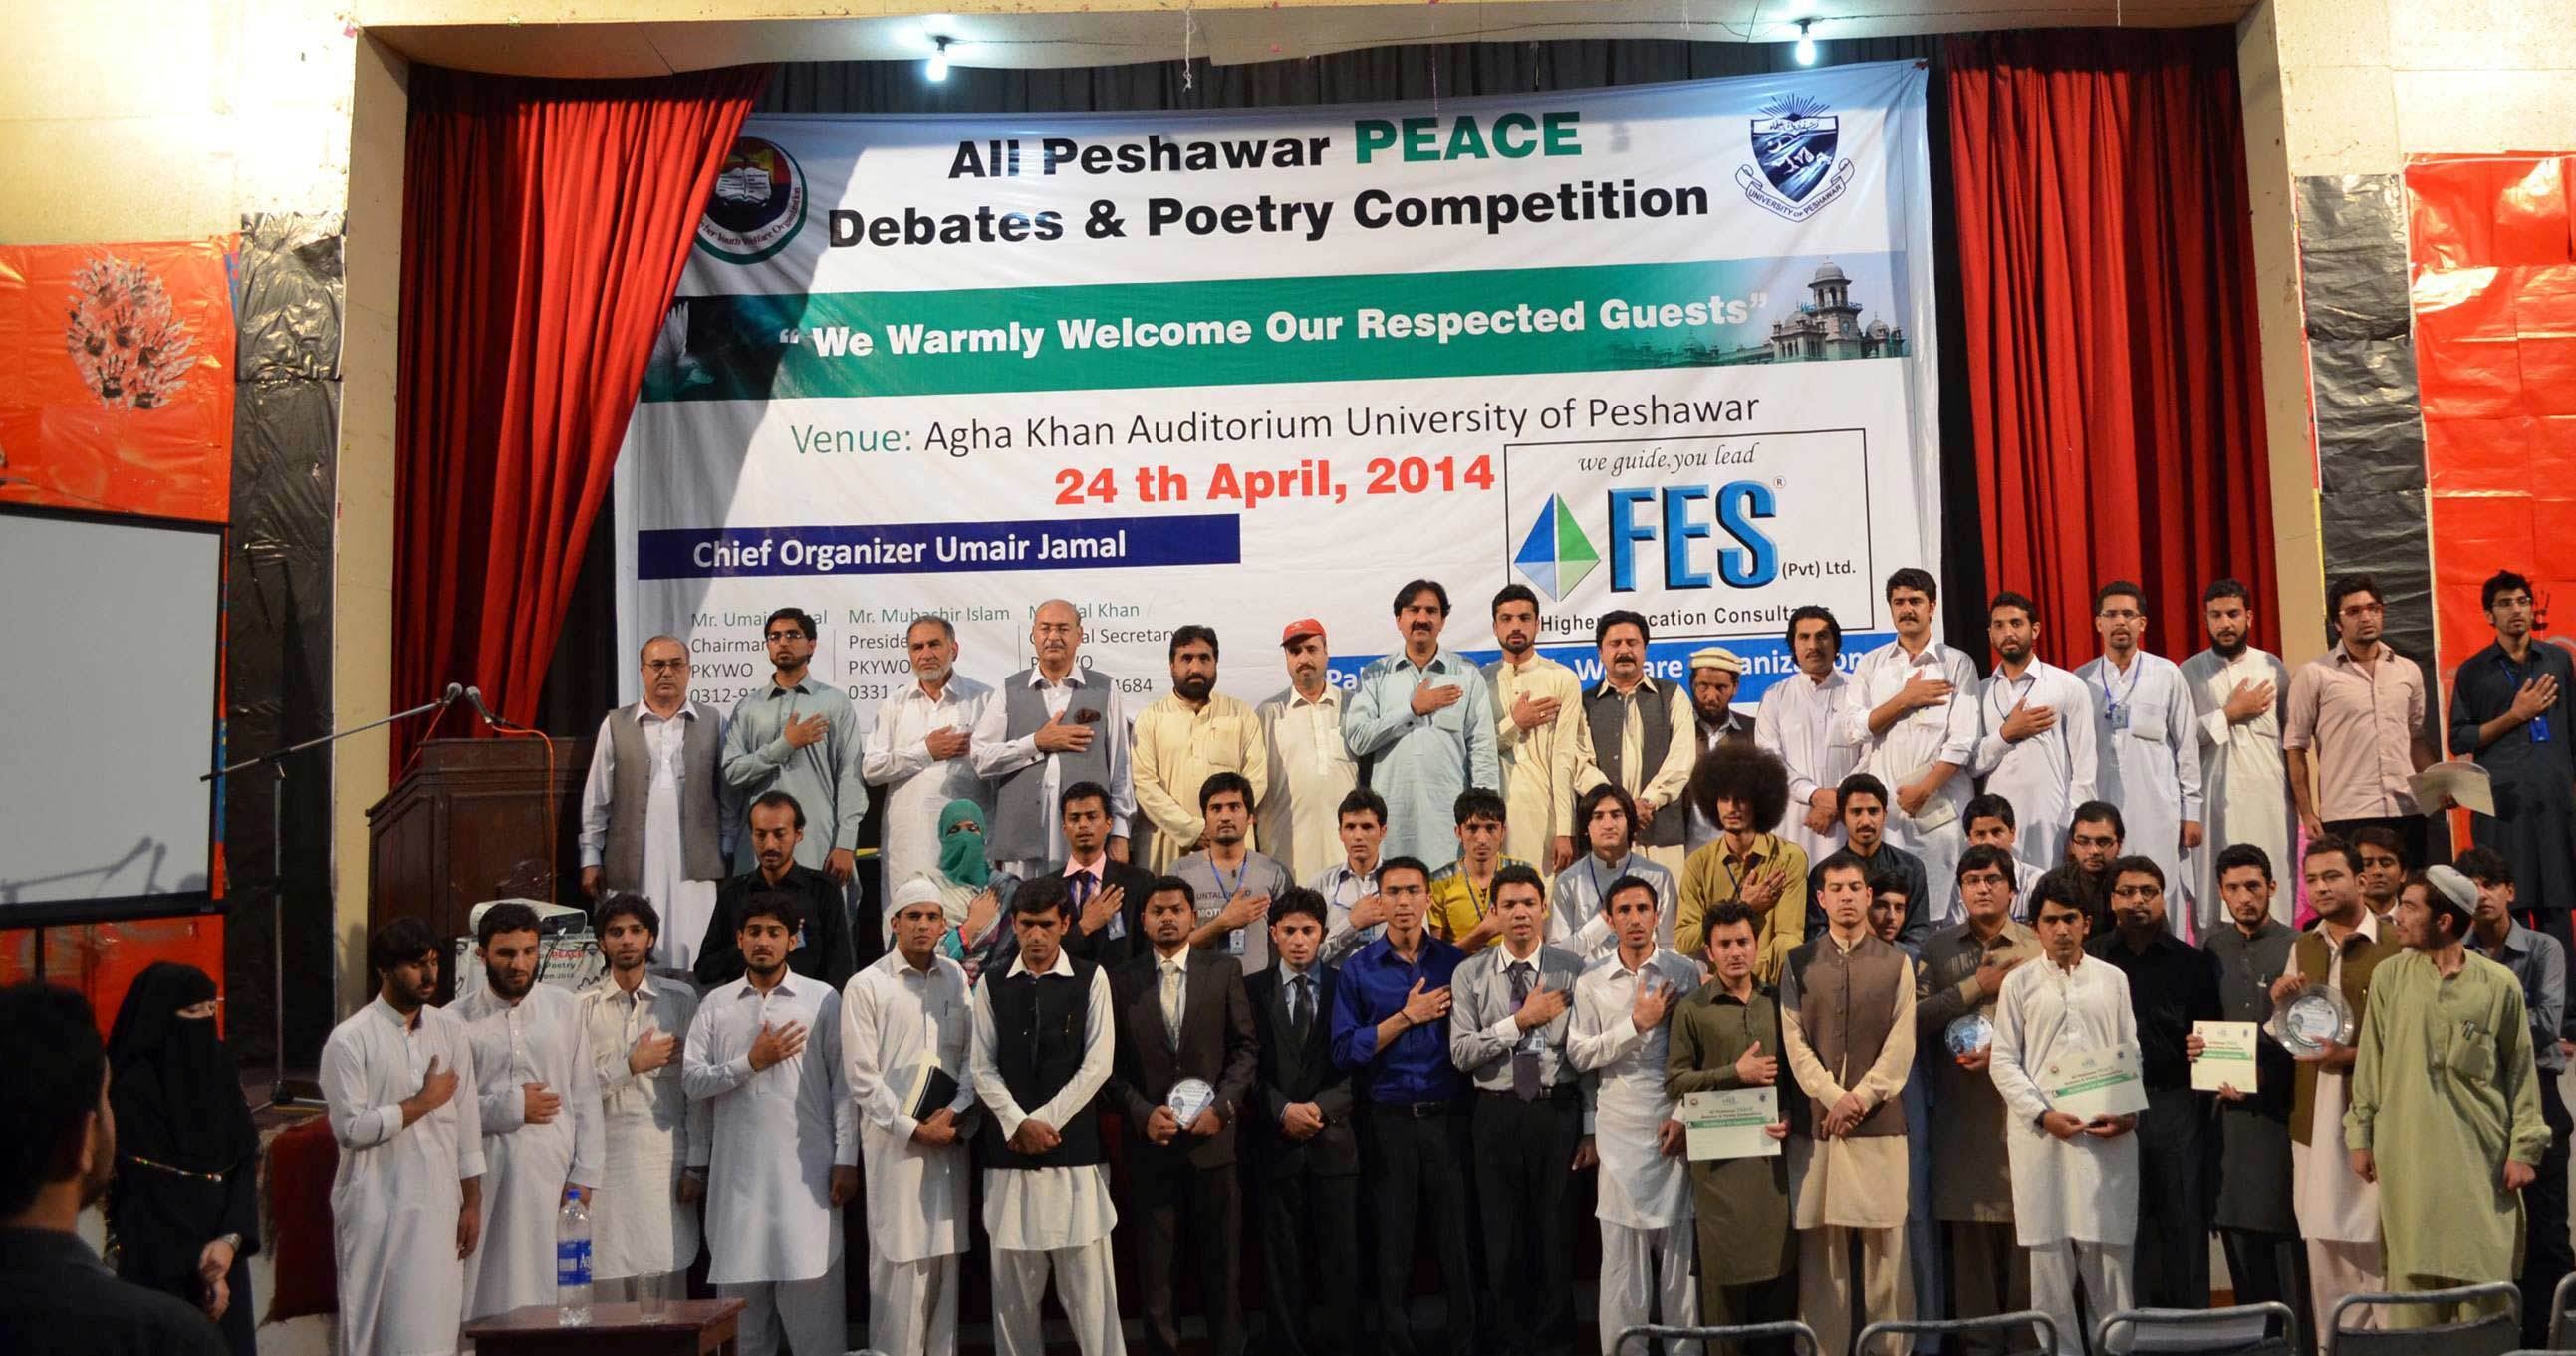 Peace debates competition